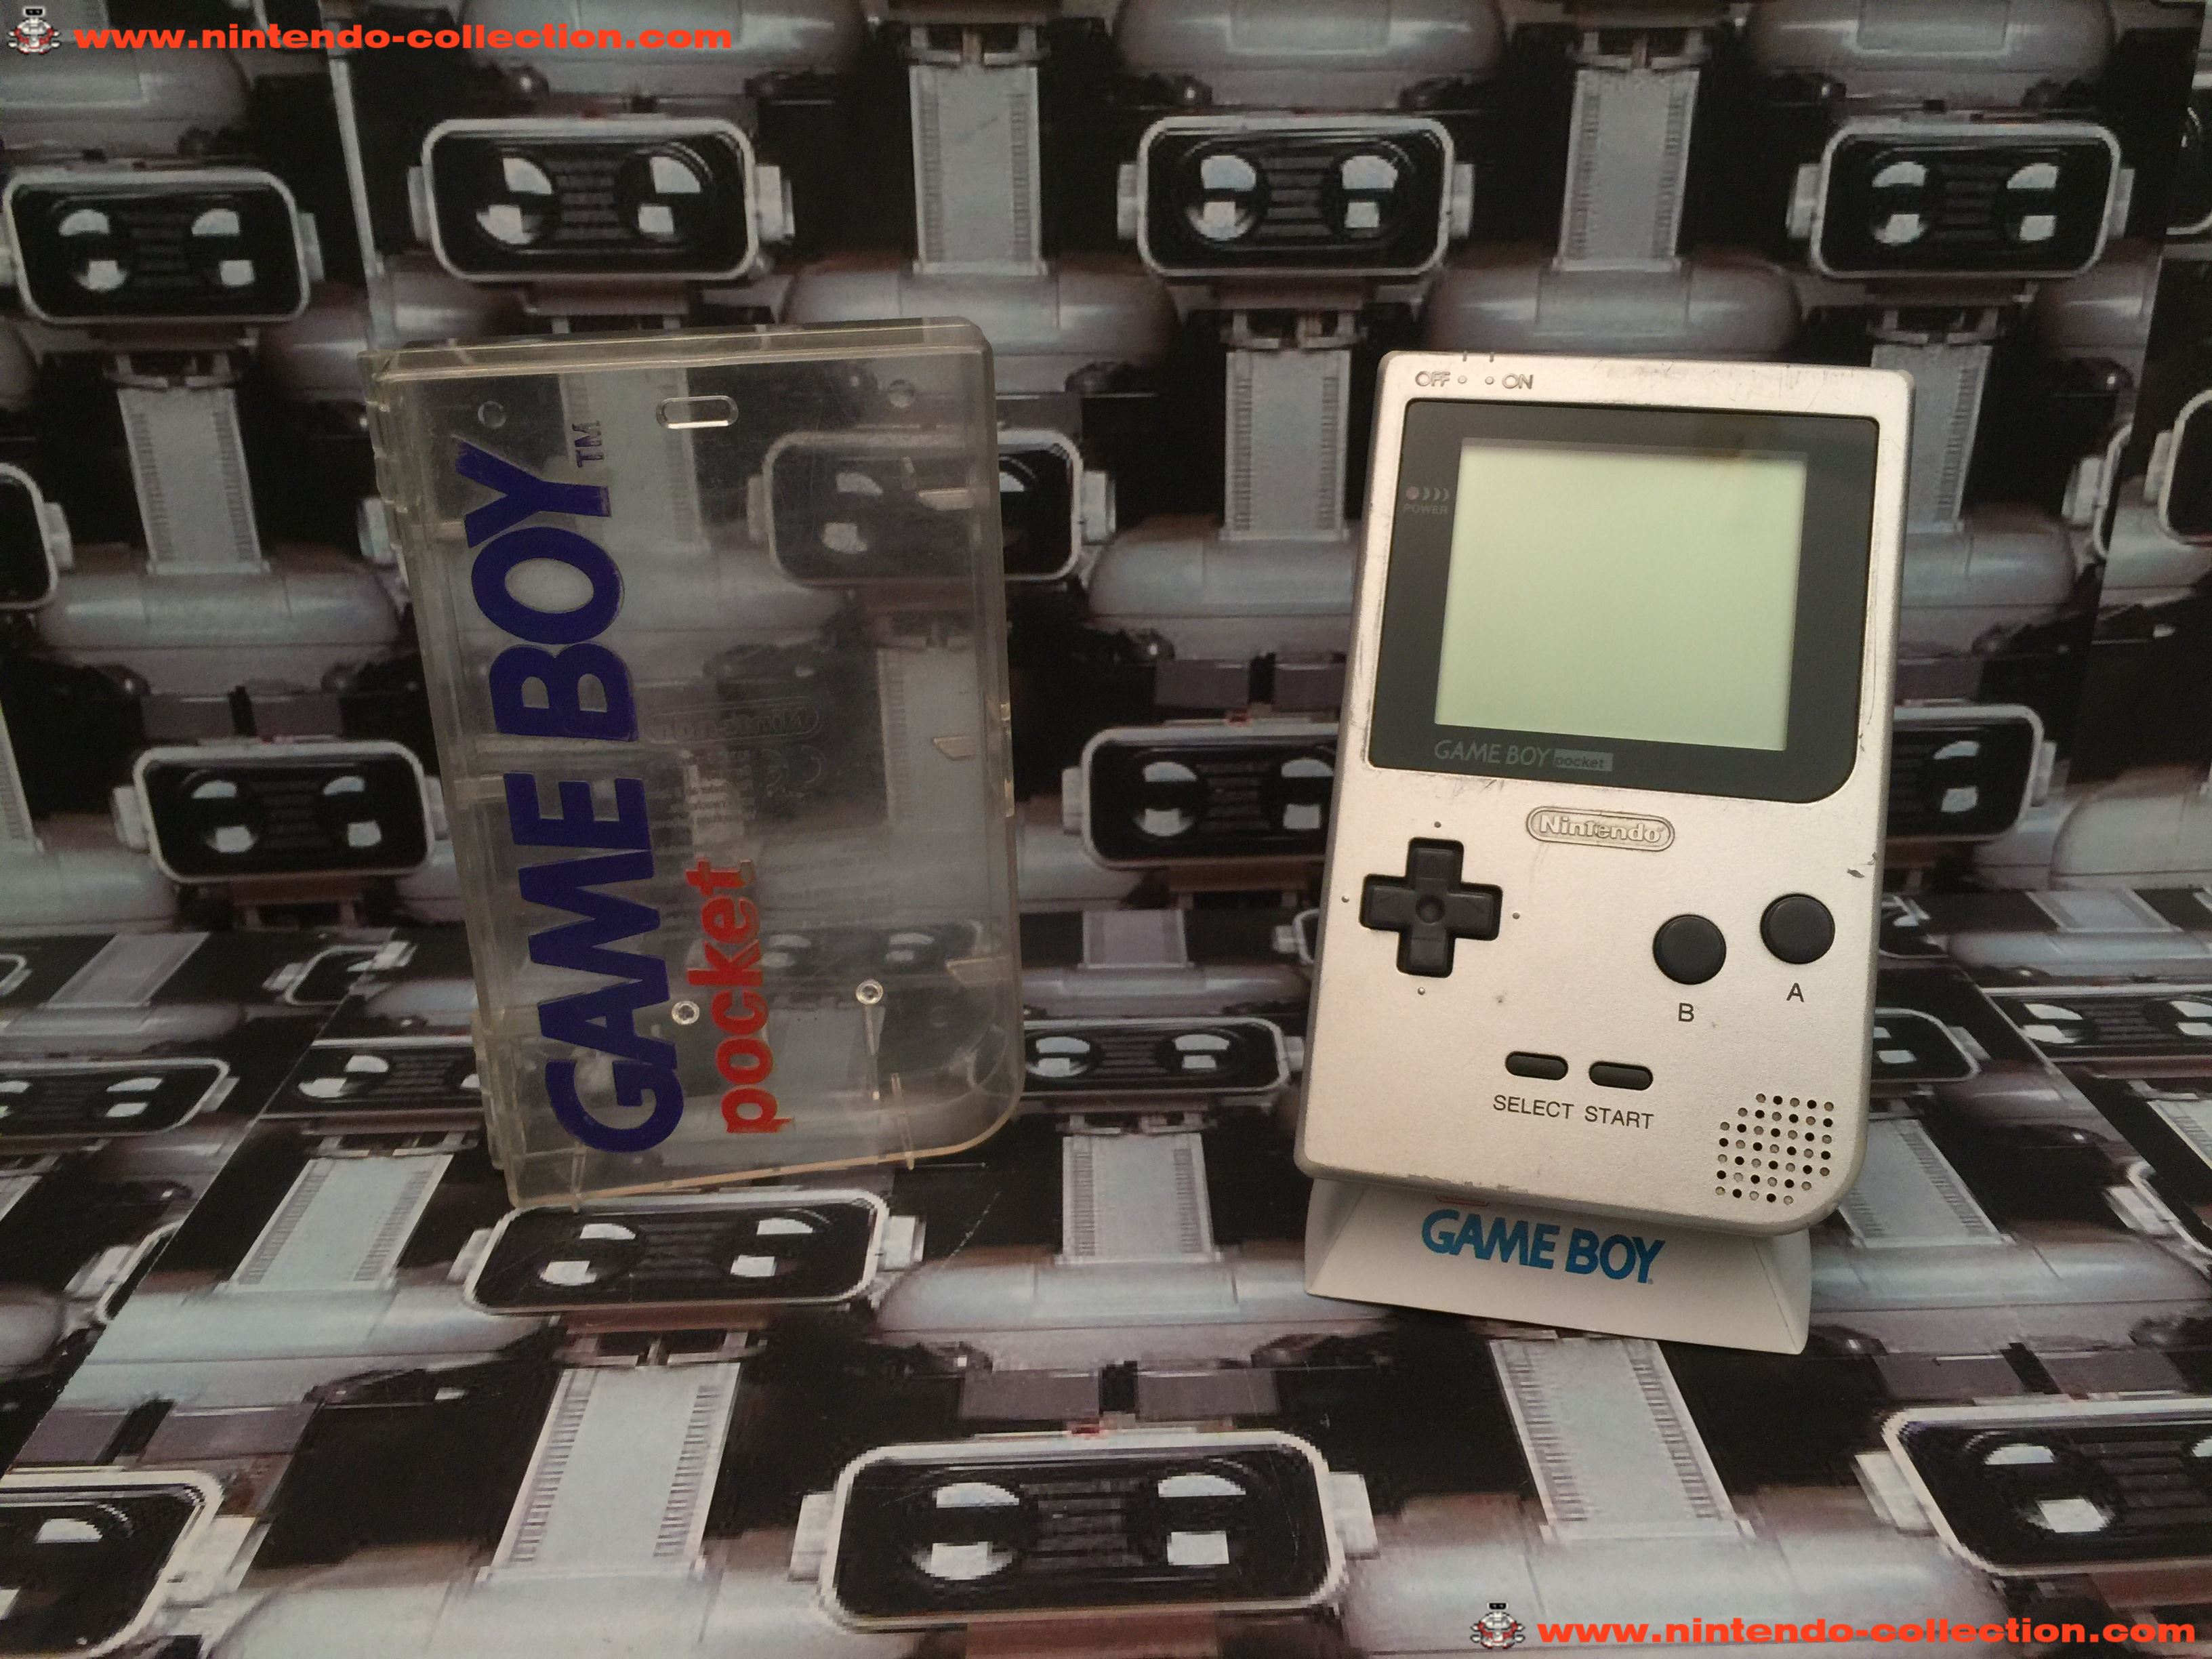 www.nintendo-collection.com - Gameboy Pocket GB Silver Argent Grise Crystal Box - 01